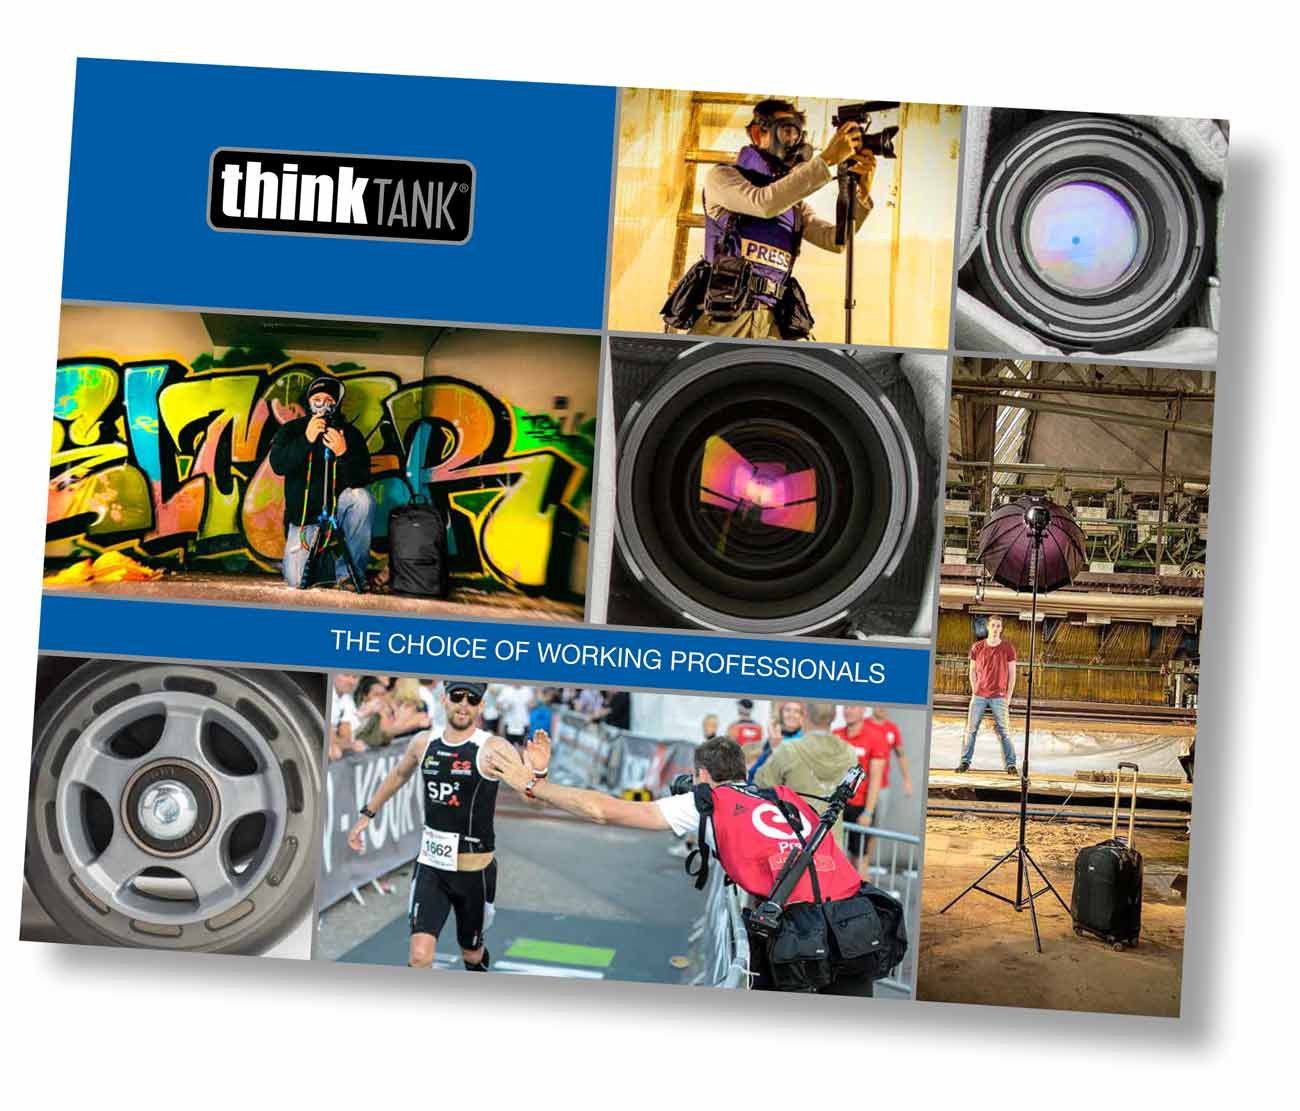 The latest product catalogue for ThinkTank photo features the image page right.